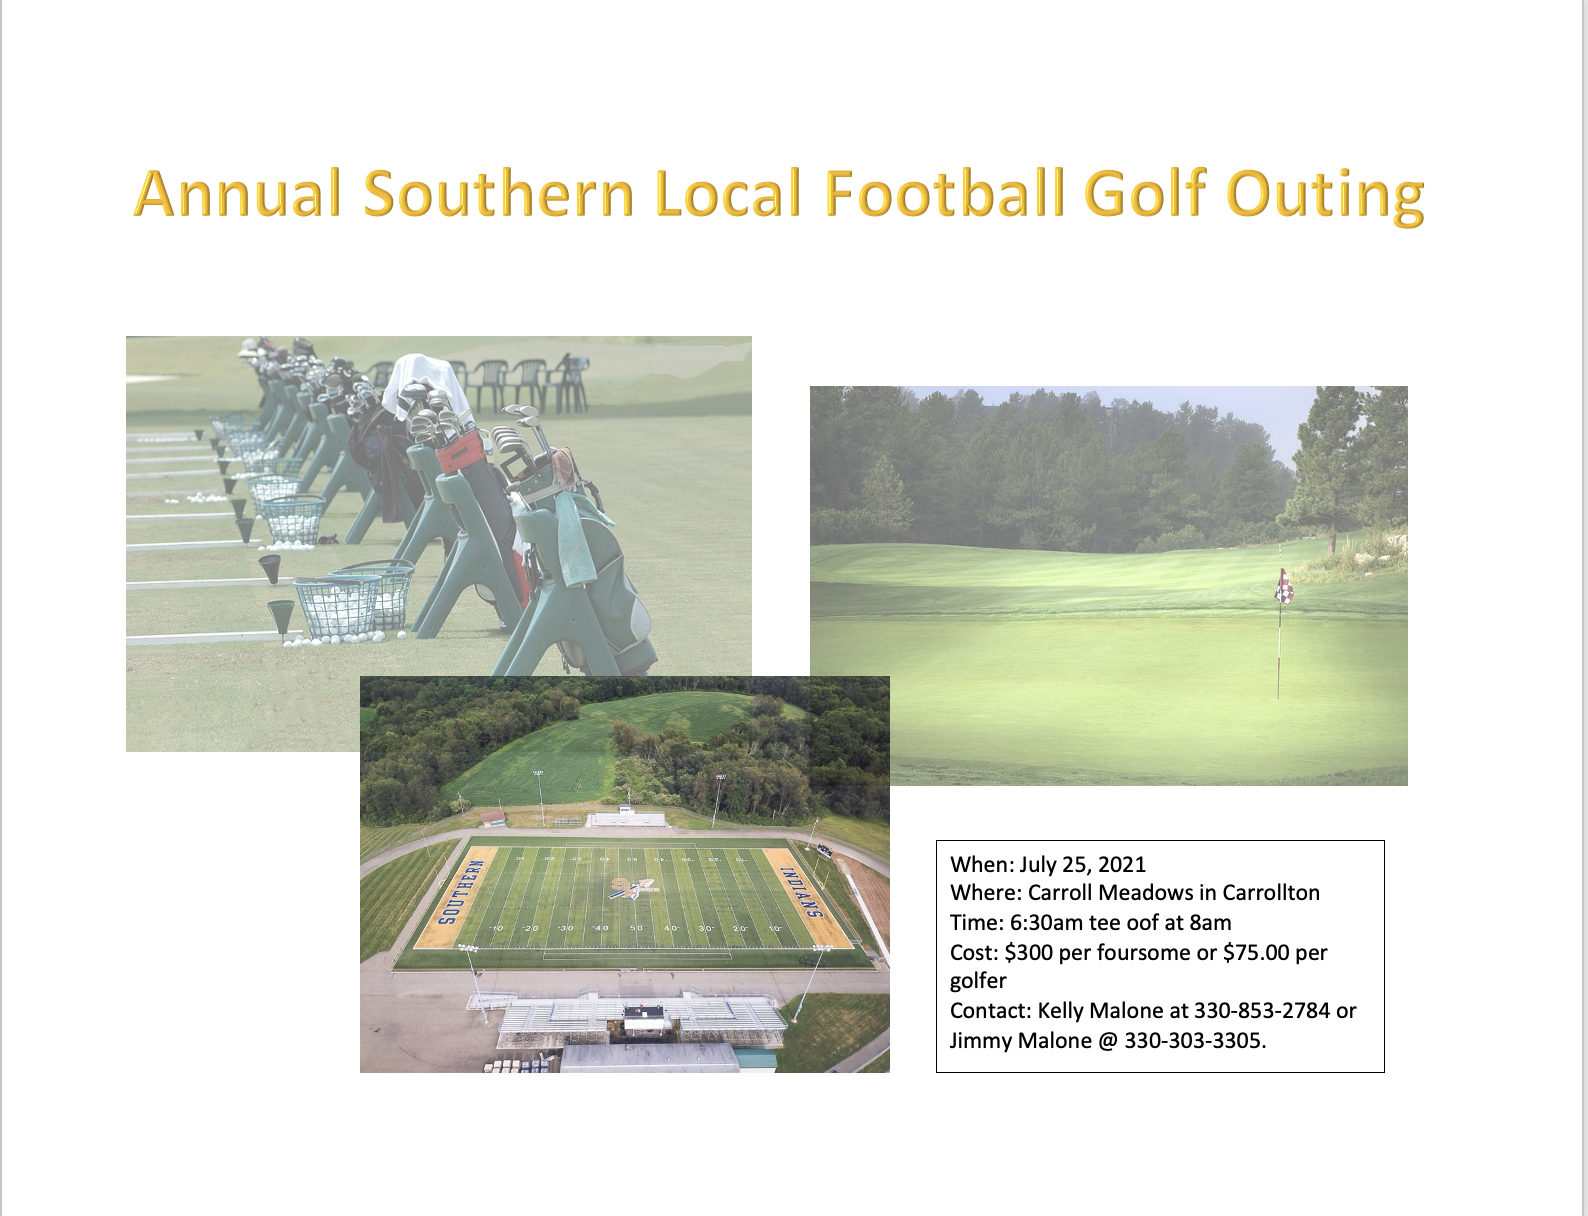 Golf outing to benefit SL Football